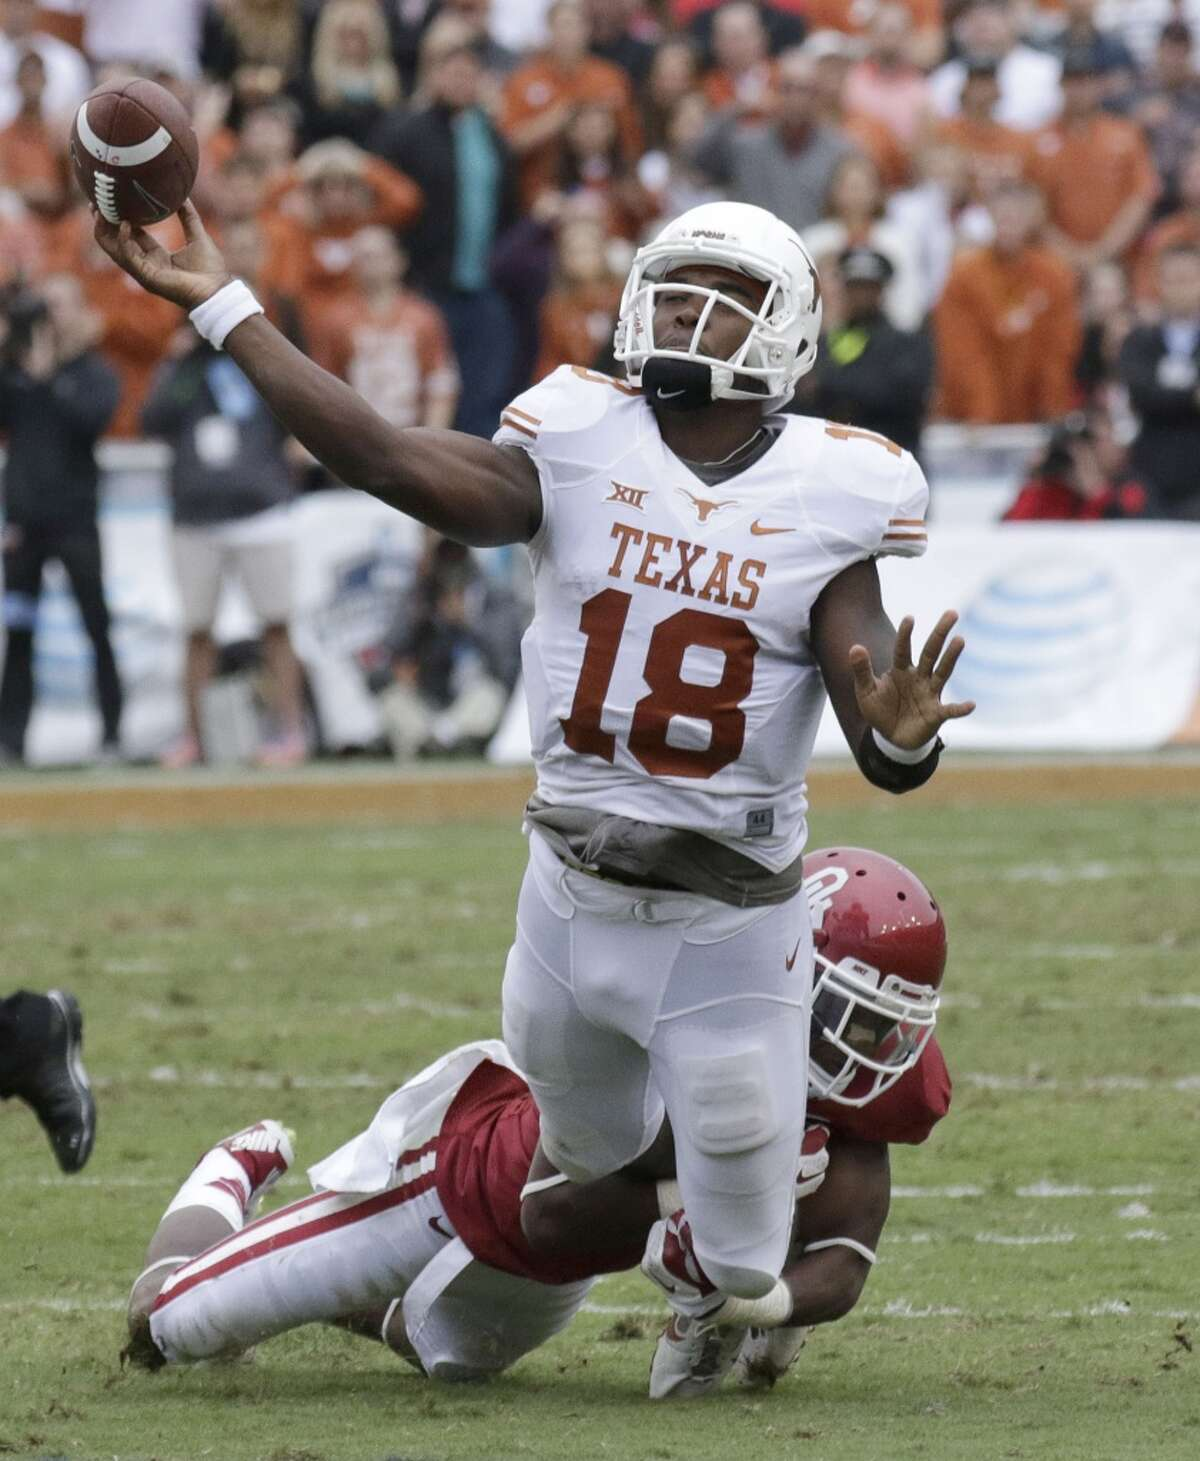 Oct. 11: Oklahoma 31, Texas 26 Texas quarterback Tyrone Swoopes (18) is tripped up by while passing against Oklahoma safety Quentin Hayes (10) during the second half.